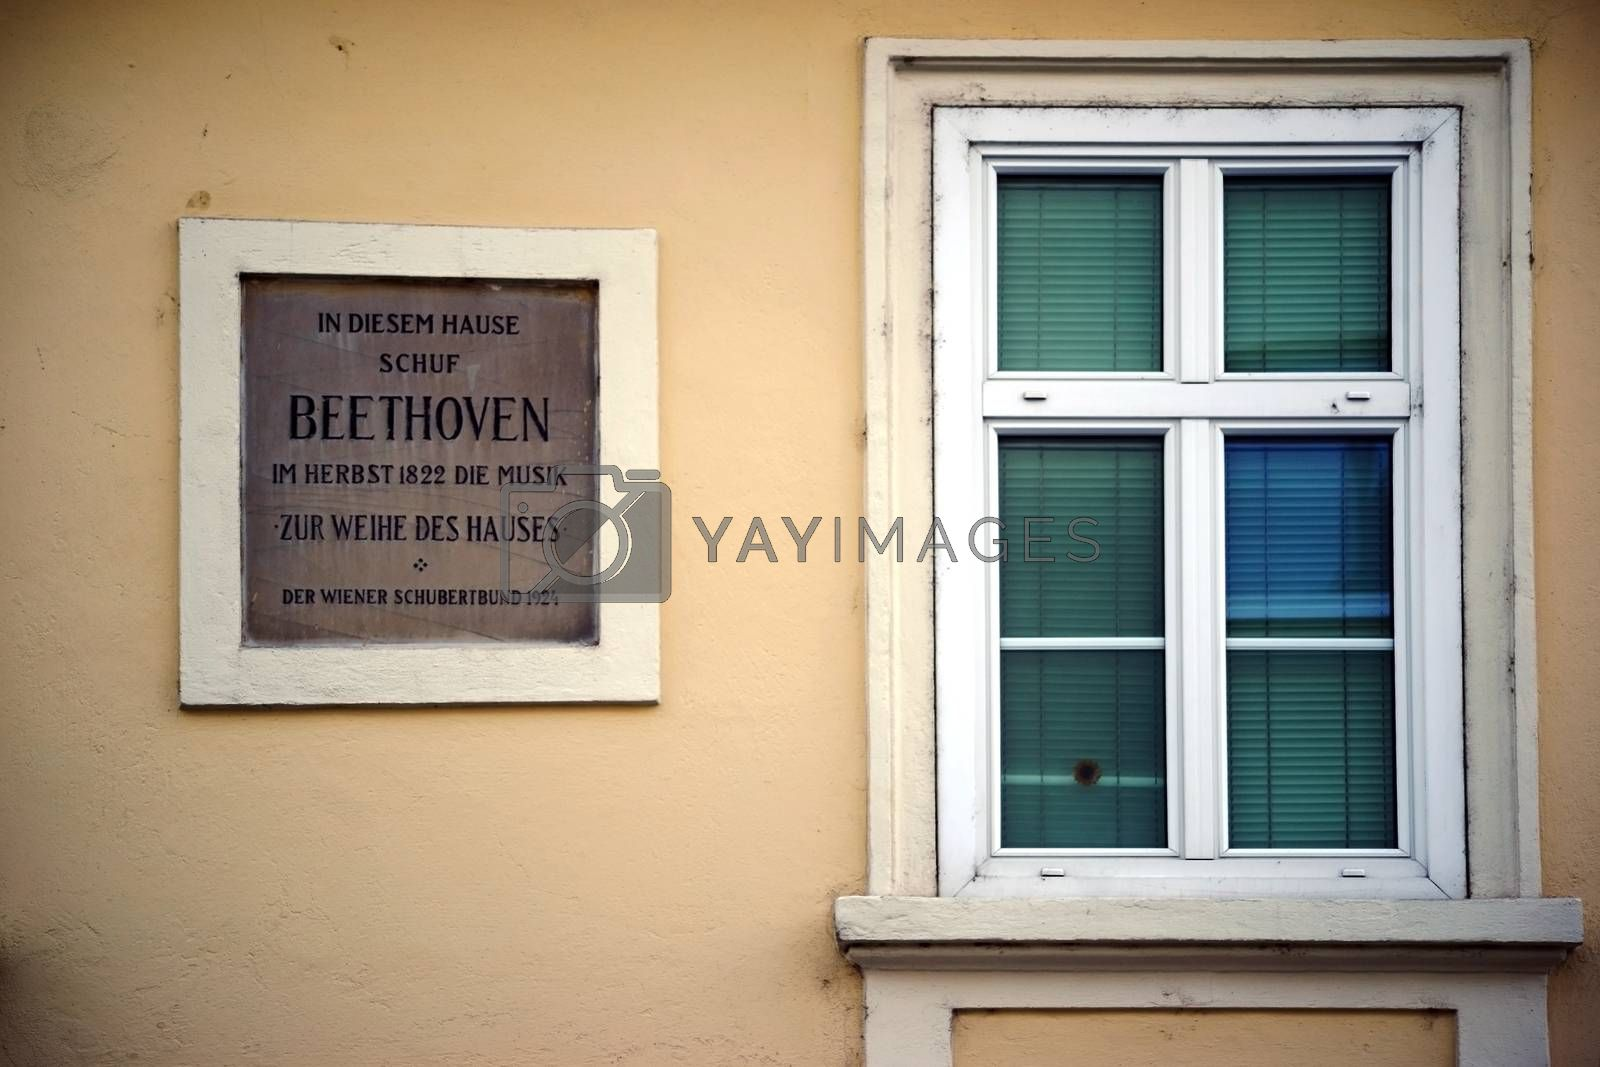 Baden, Austria - November 14, 2015: A nostalgic plate and an old window of the Beethoven House on November 14, 2015 in Baden near Vienna.